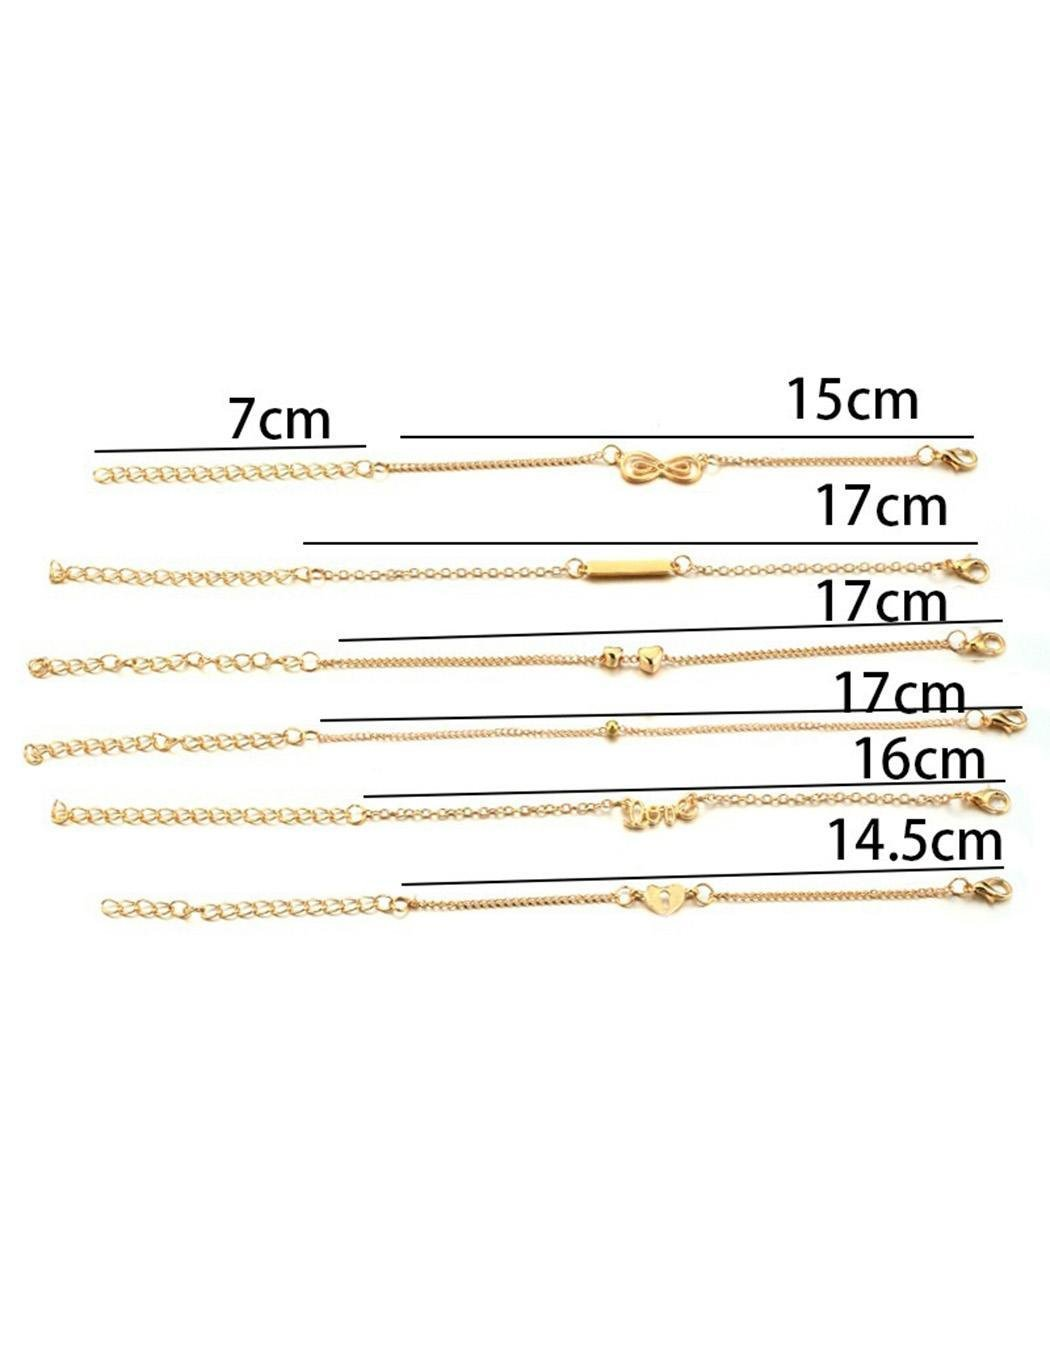 Jingjing1 Anklet Bracelets 6 Pcs Set Adjustable Fashion Heart Love Foot Chain